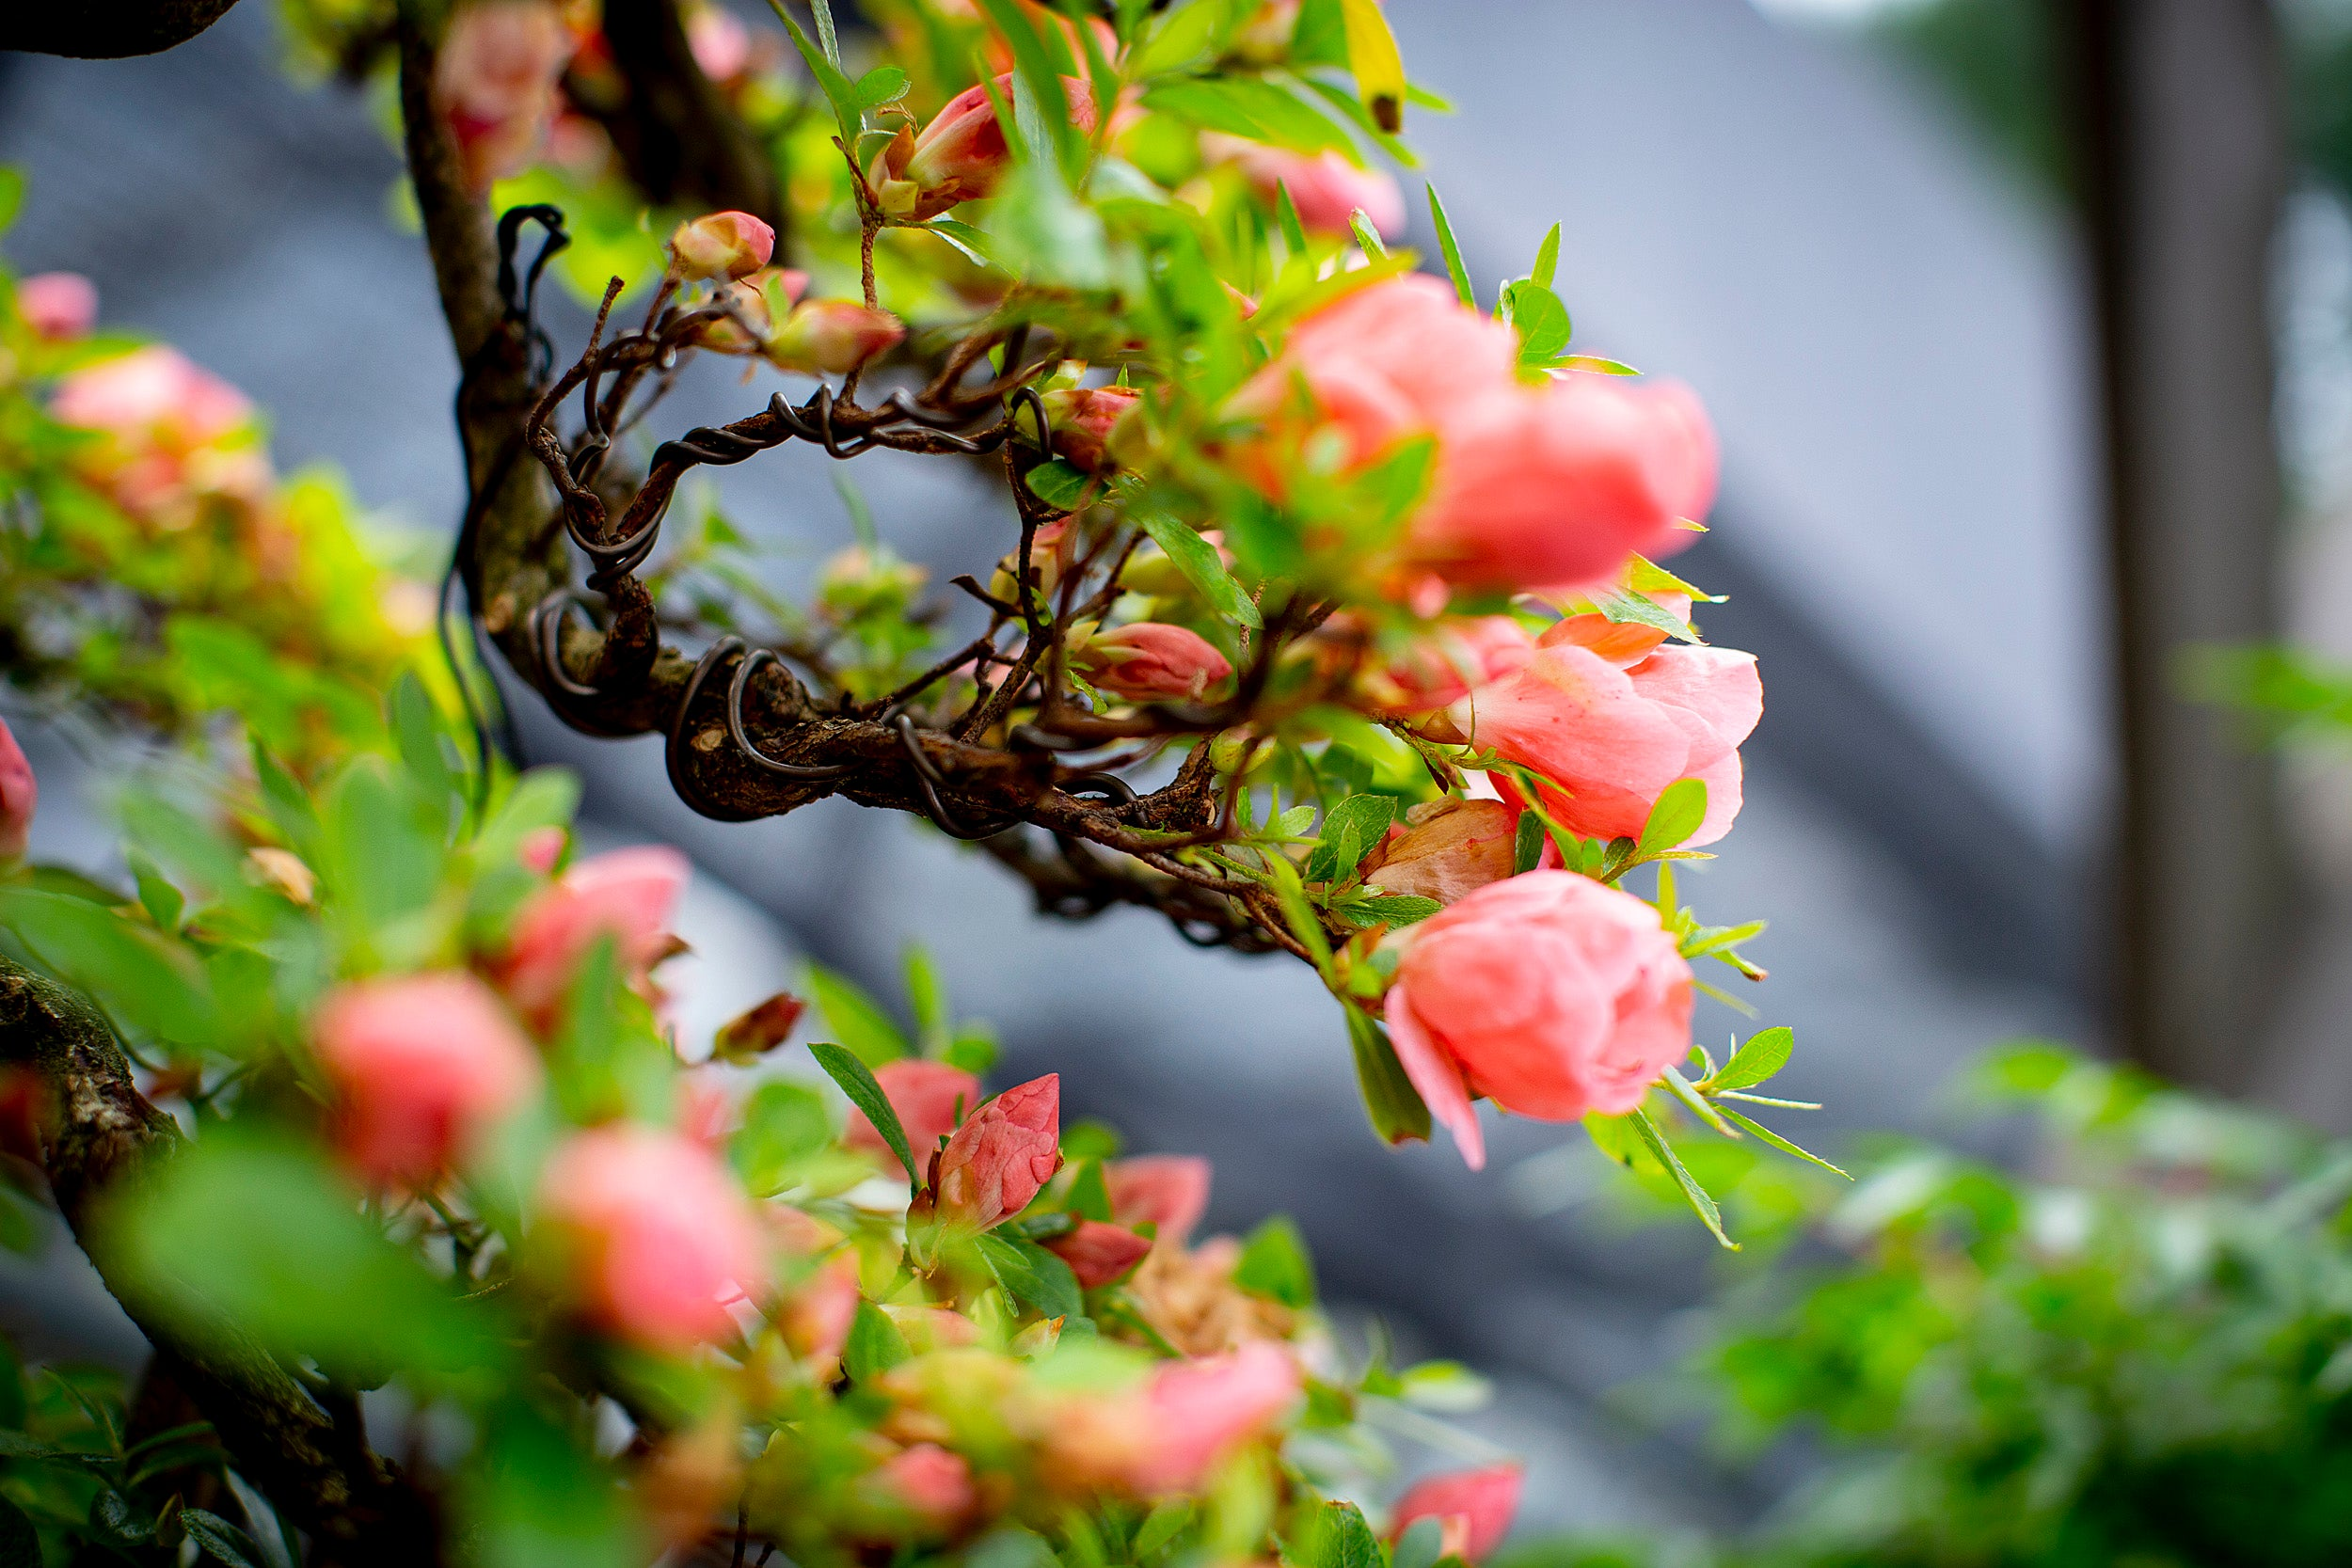 Blossoms on a bonsai tree